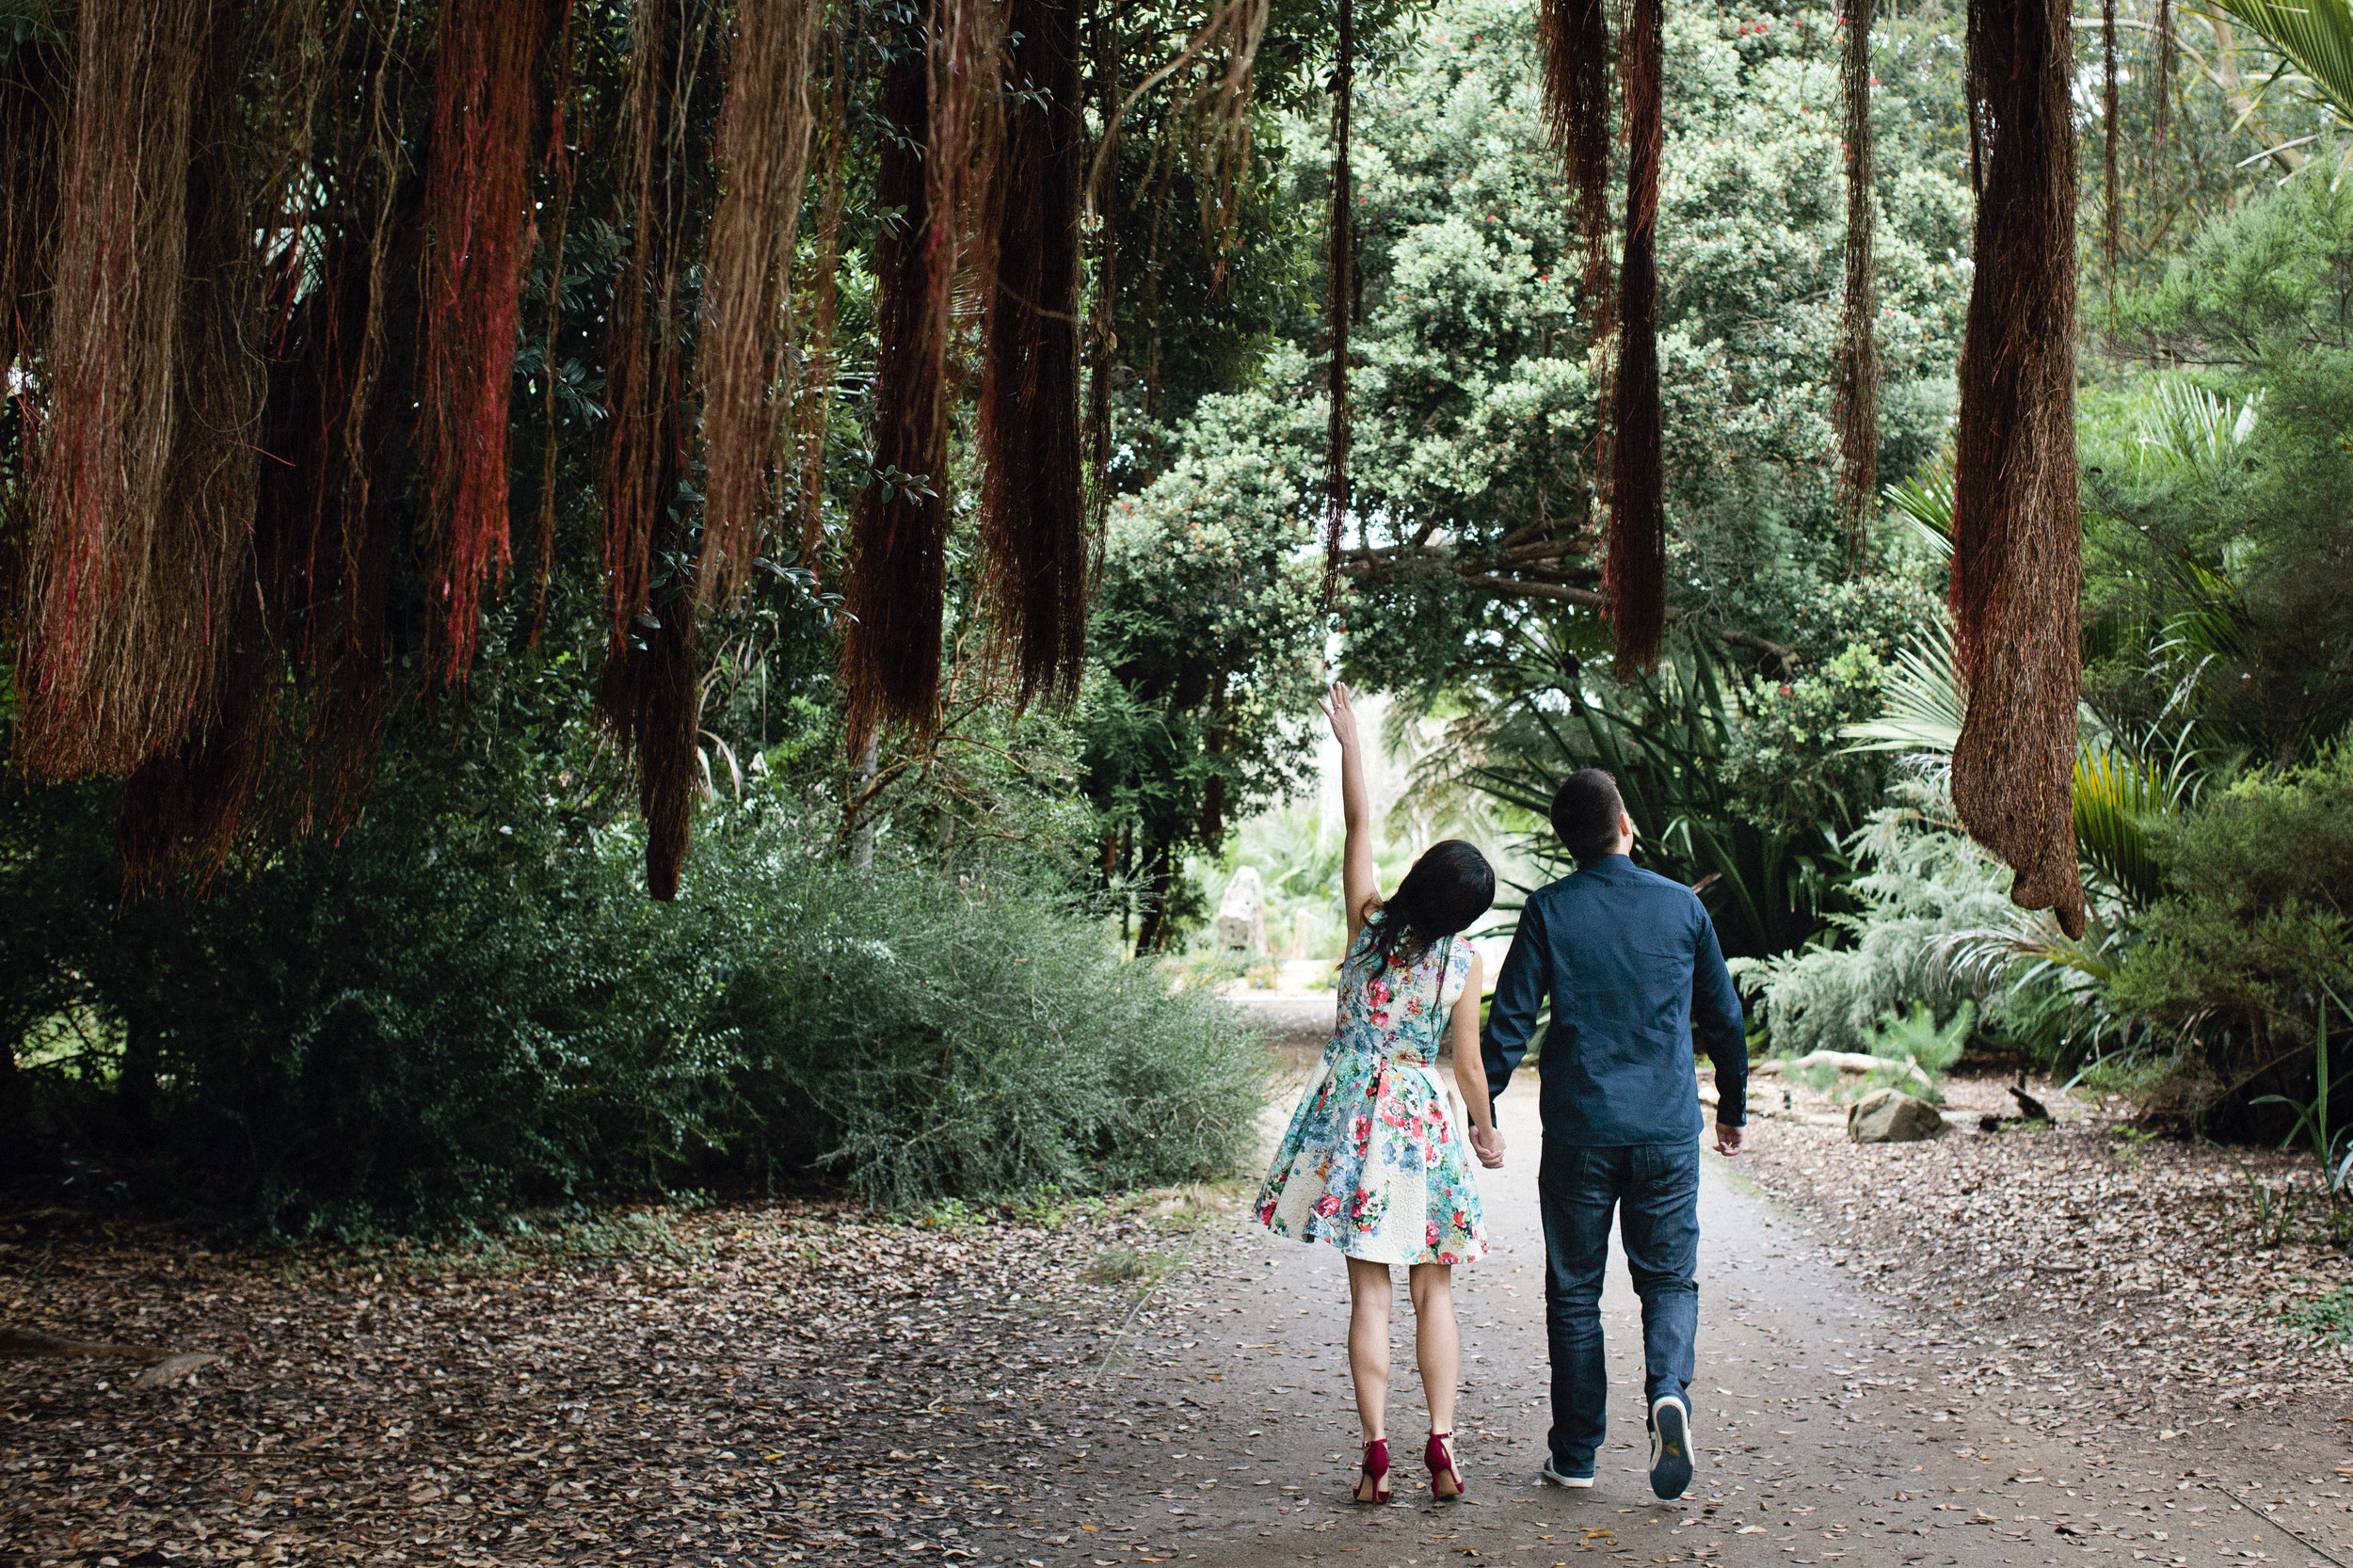 Jing and Arthur in the Botanical Gardens in their Golden Gate Park engagement session.